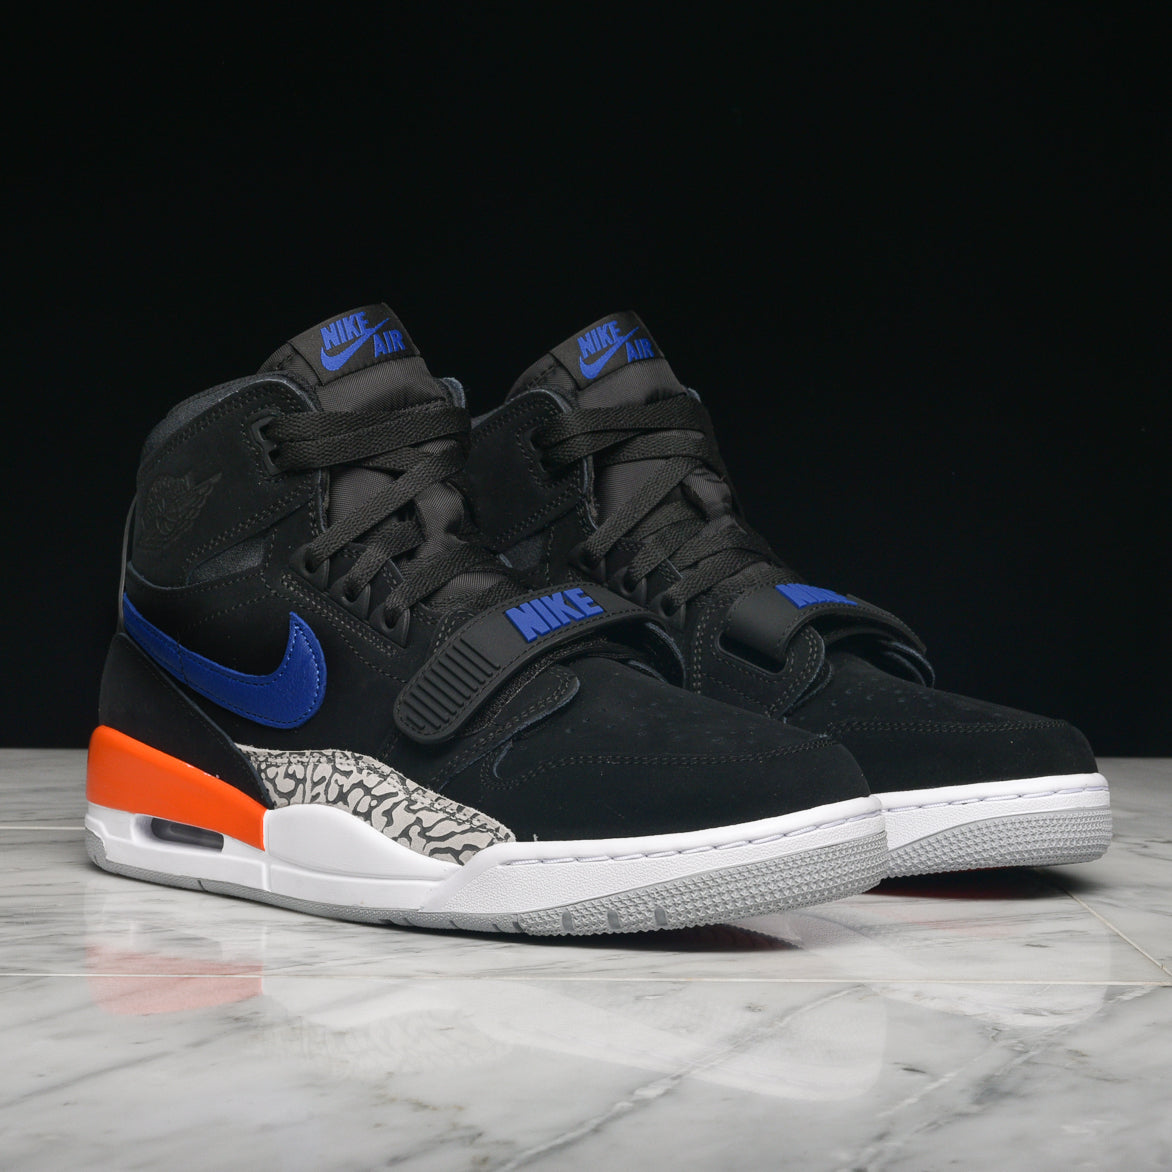 AIR JORDAN LEGACY 312 BLACK RUSH BLUE